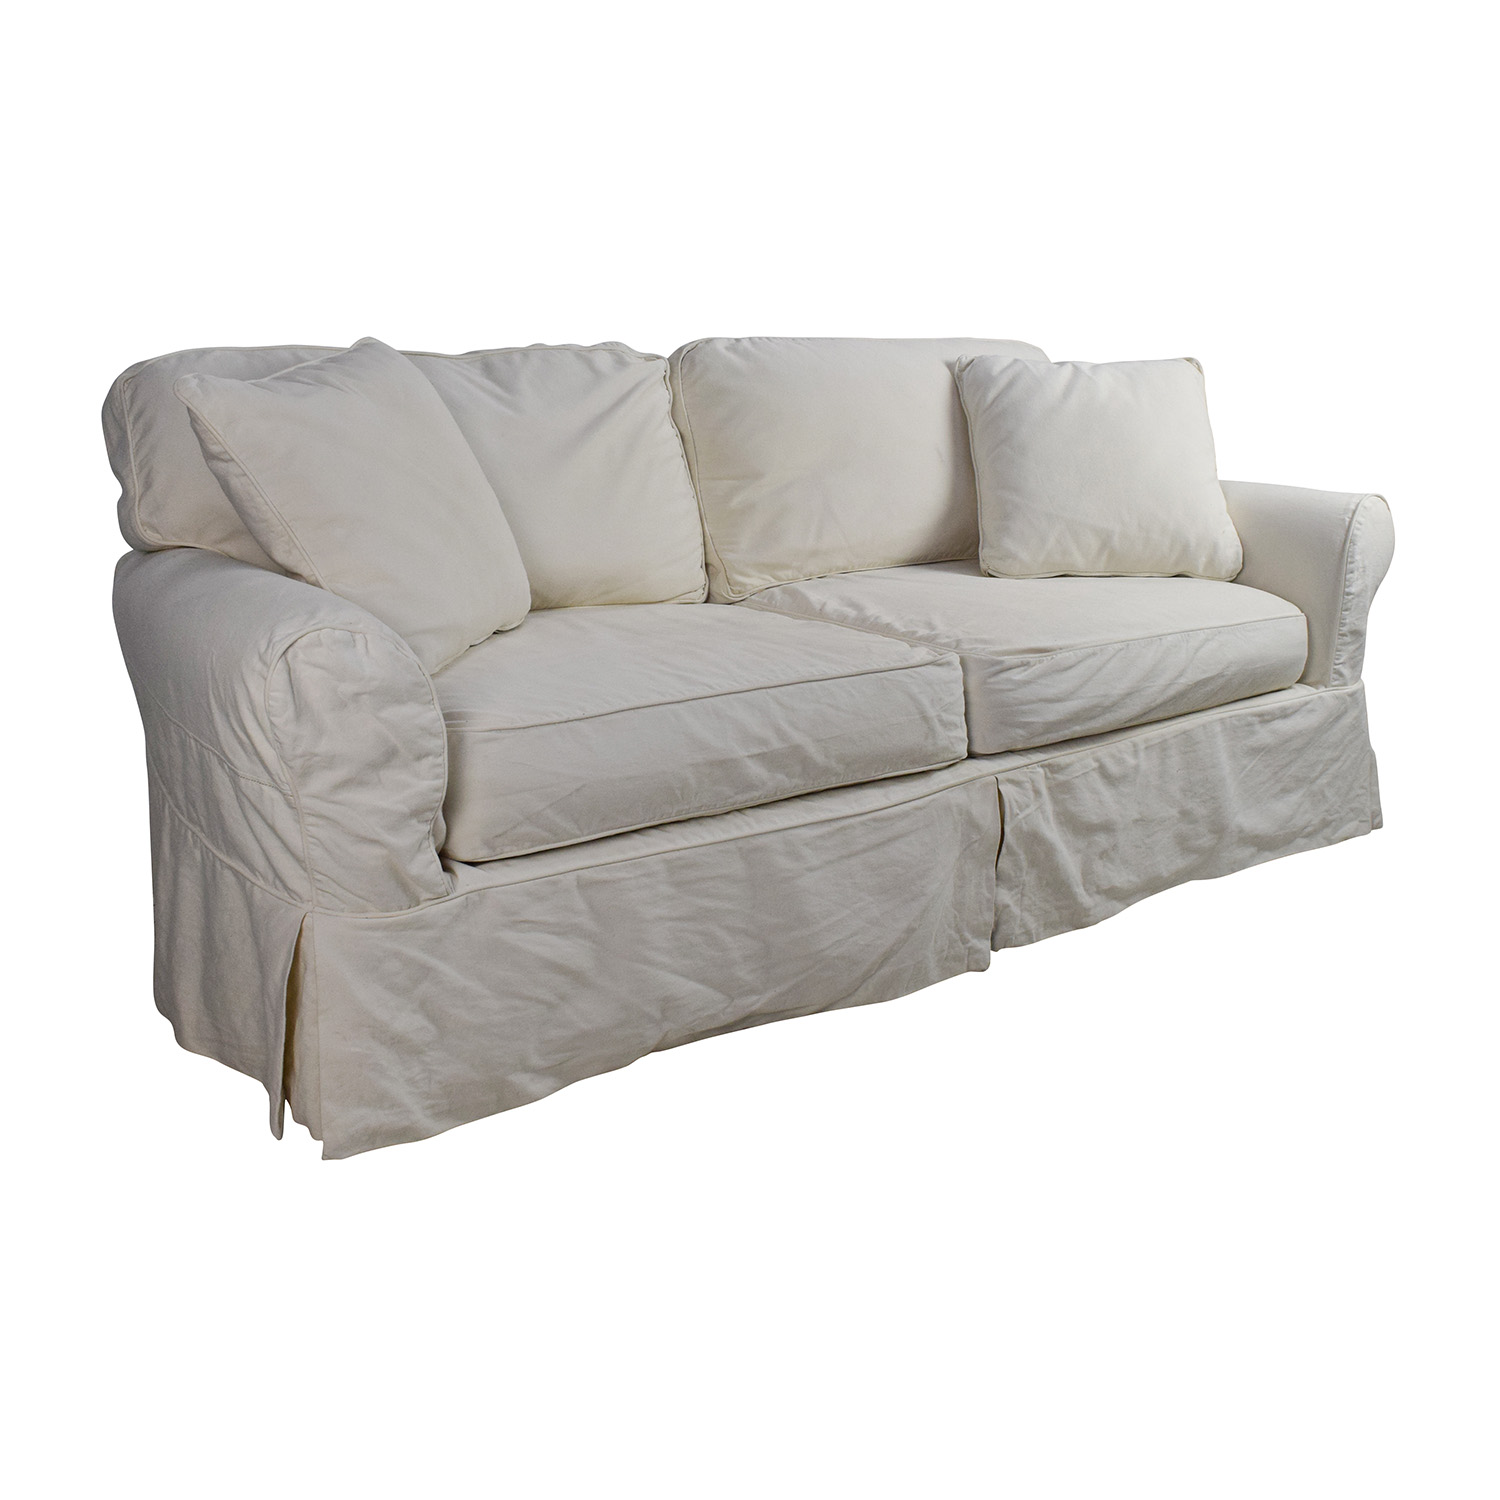 raymour and flanigan sectional sofas throw blankets for sofa 87 off lakeside